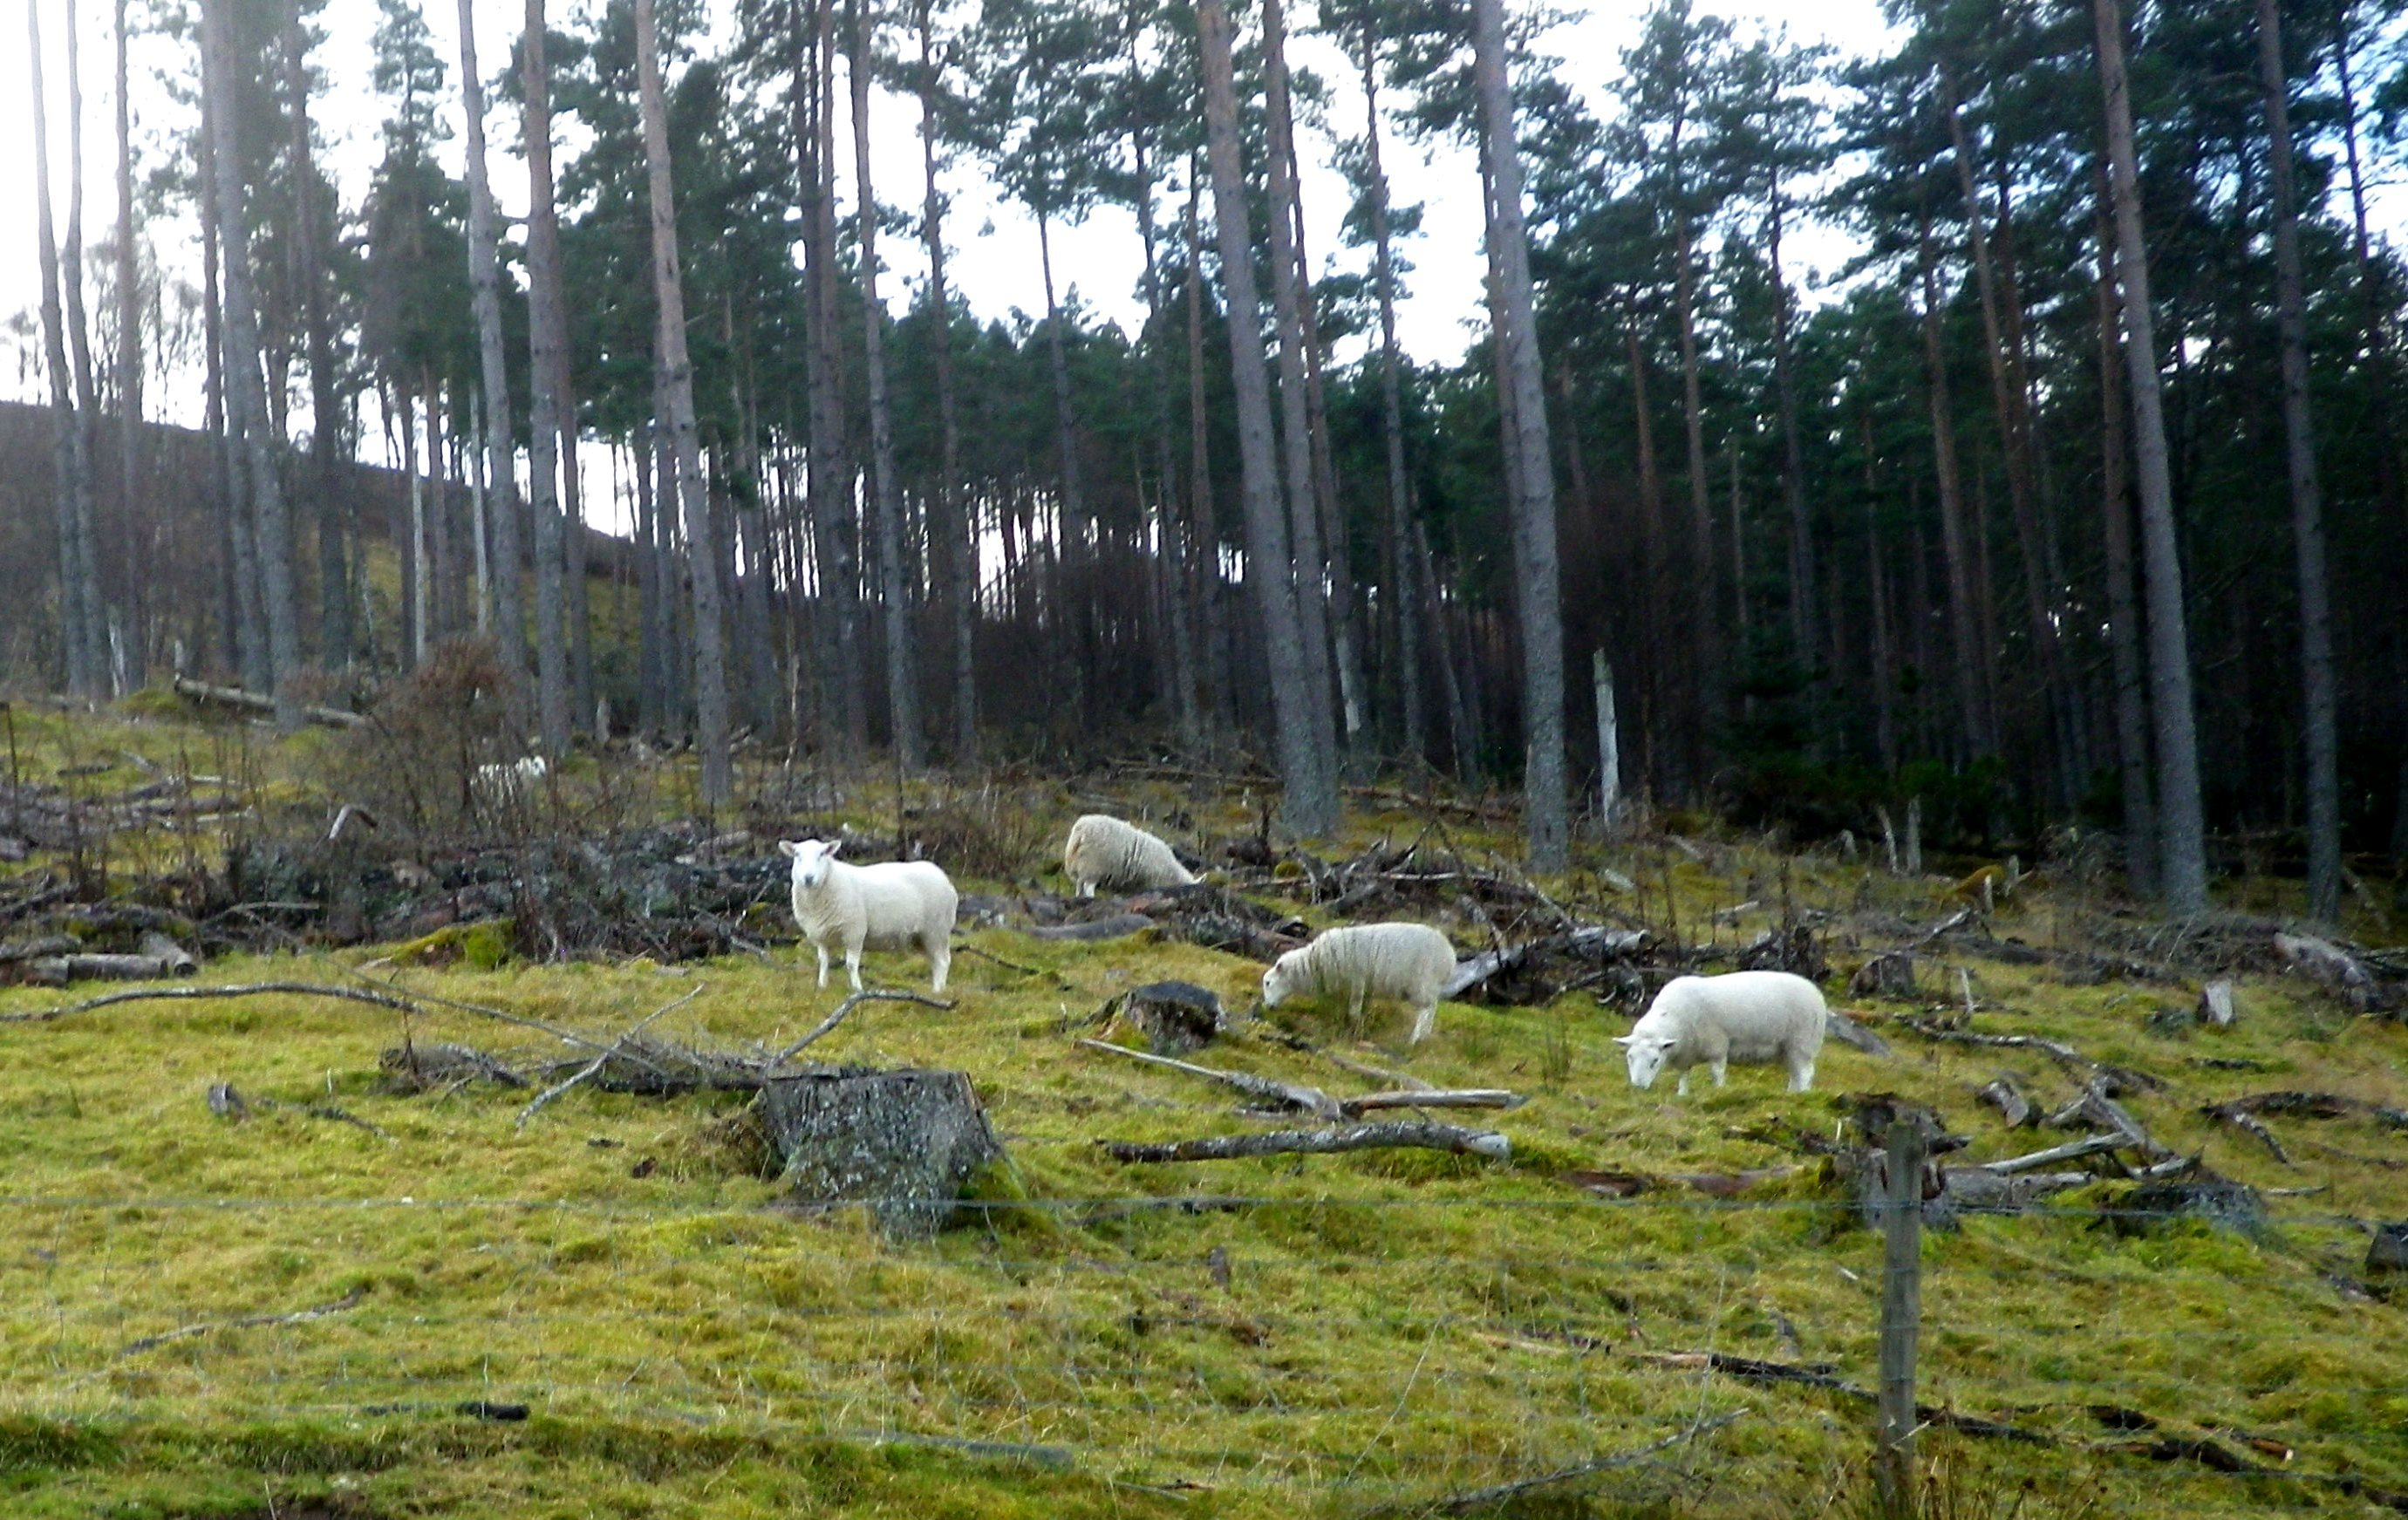 Sheep have been sighted in various forestry blocks